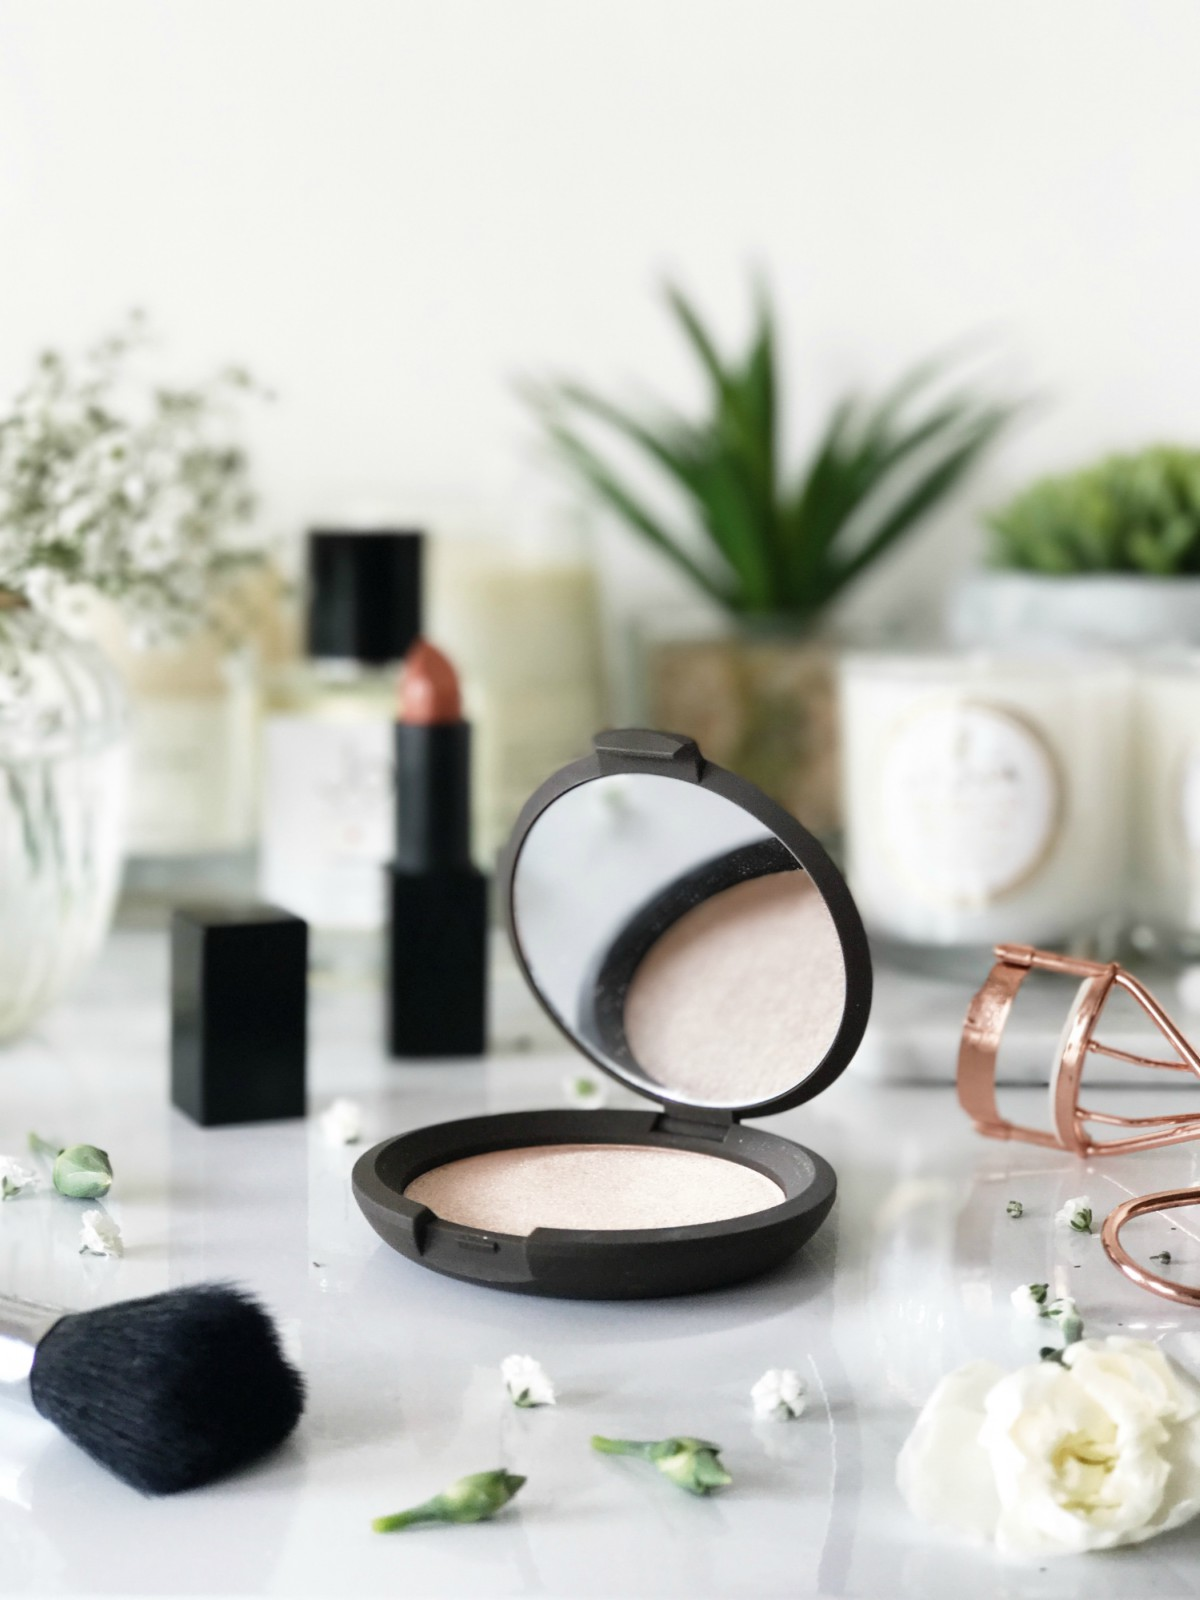 Becca Shimmering Skin Perfector in Opal Review